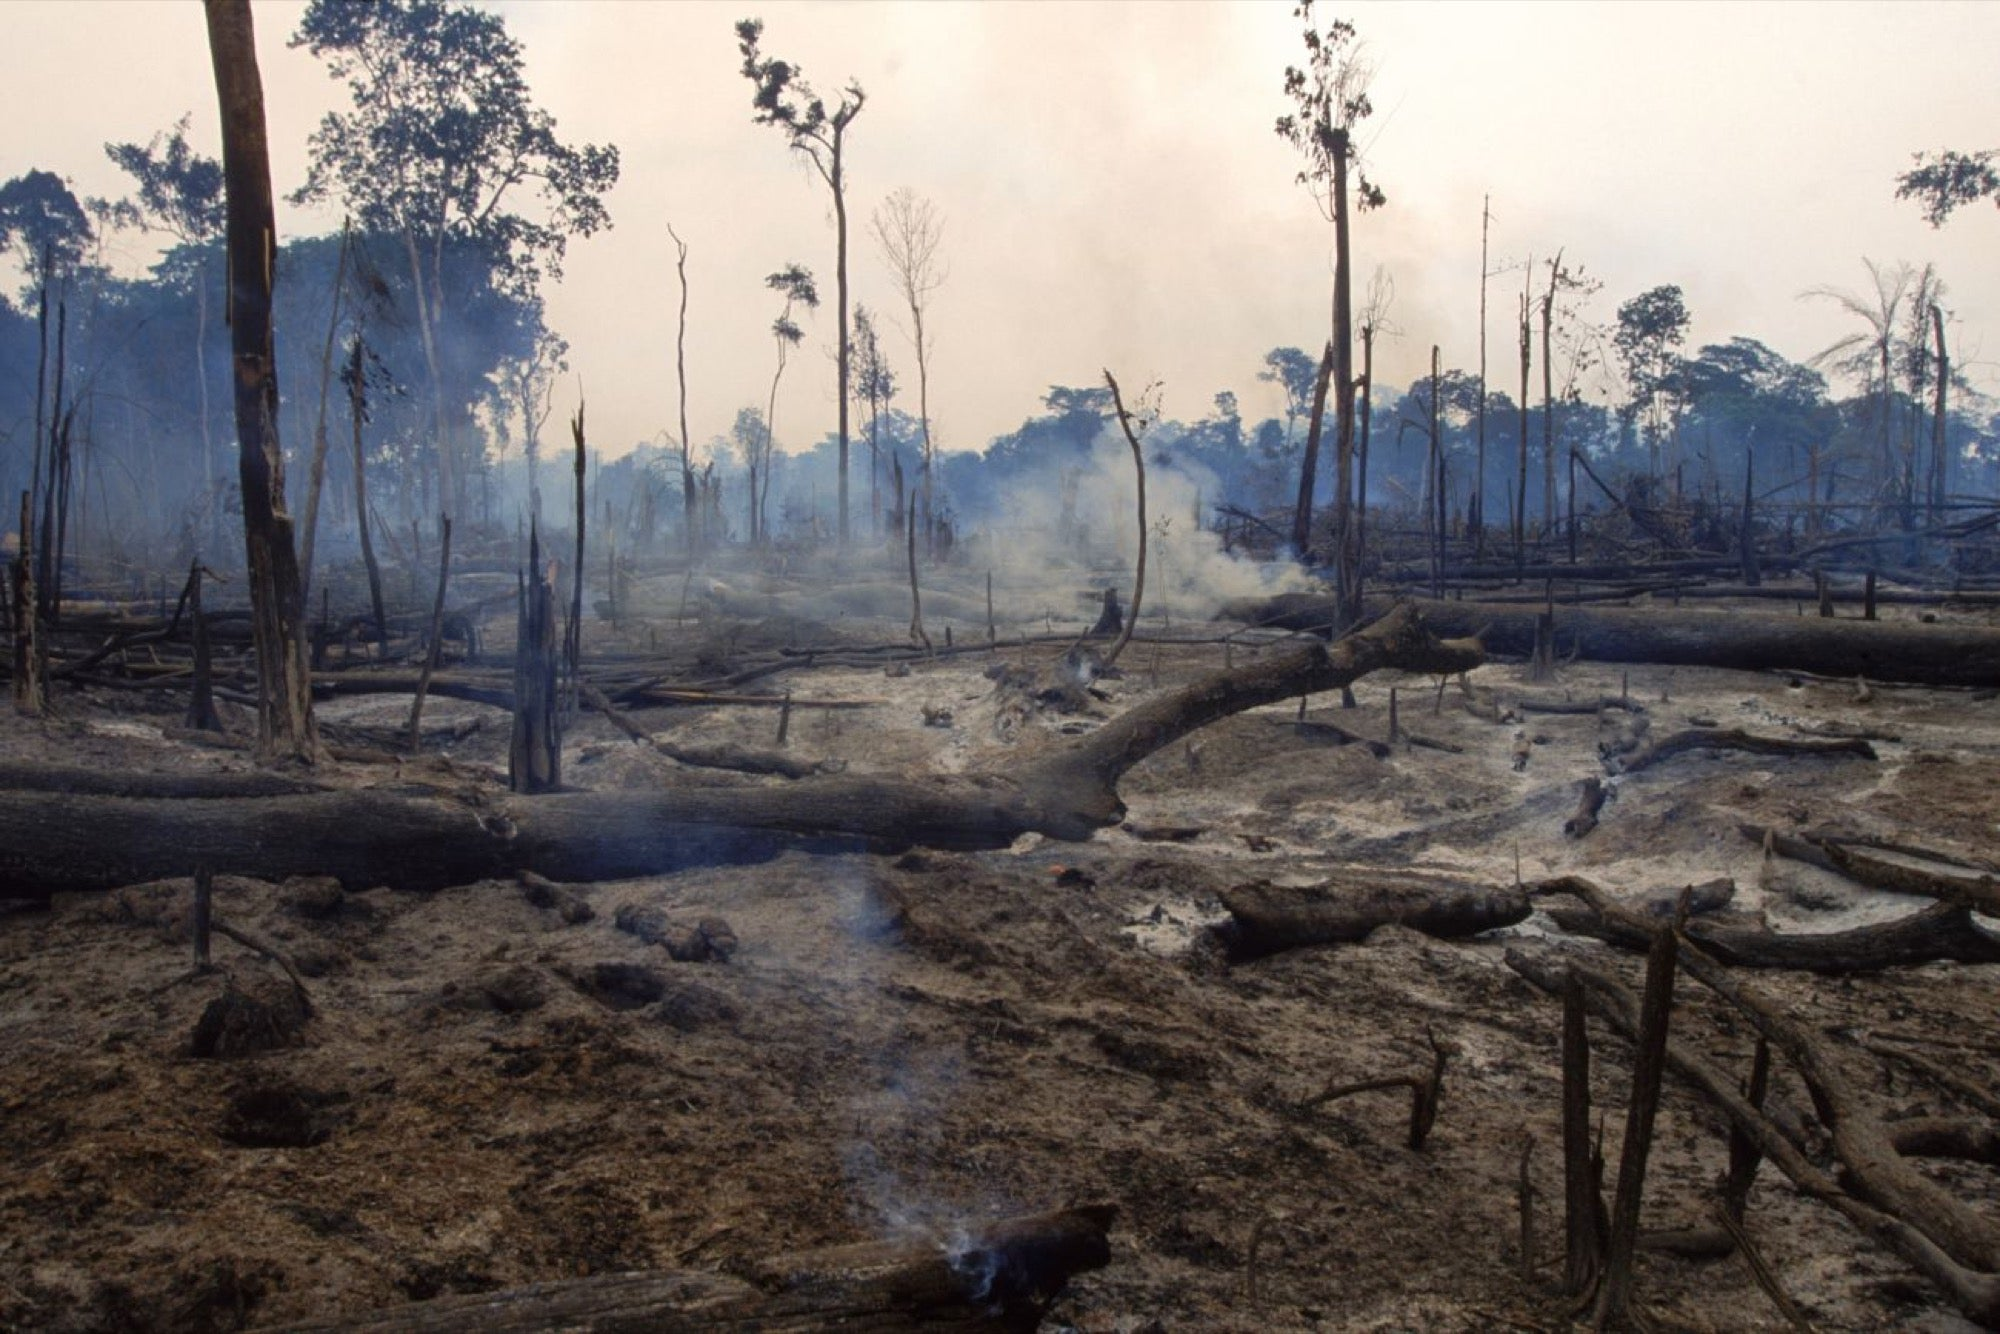 This Is Climate Change' Tells an Urgent Message Via Virtual